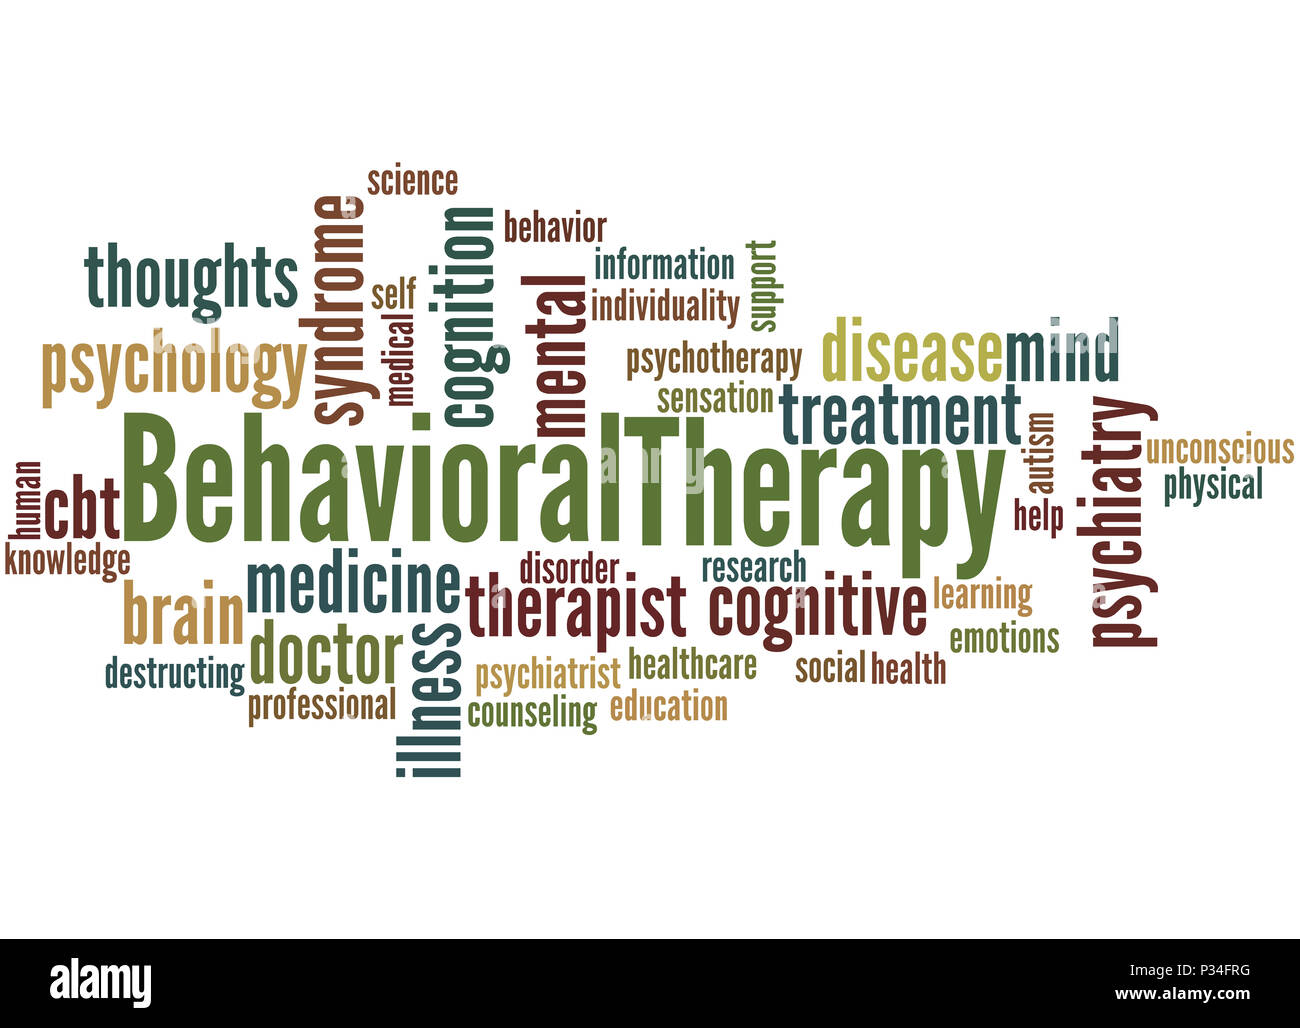 Behavioral Therapy, word cloud concept on white background. - Stock Image